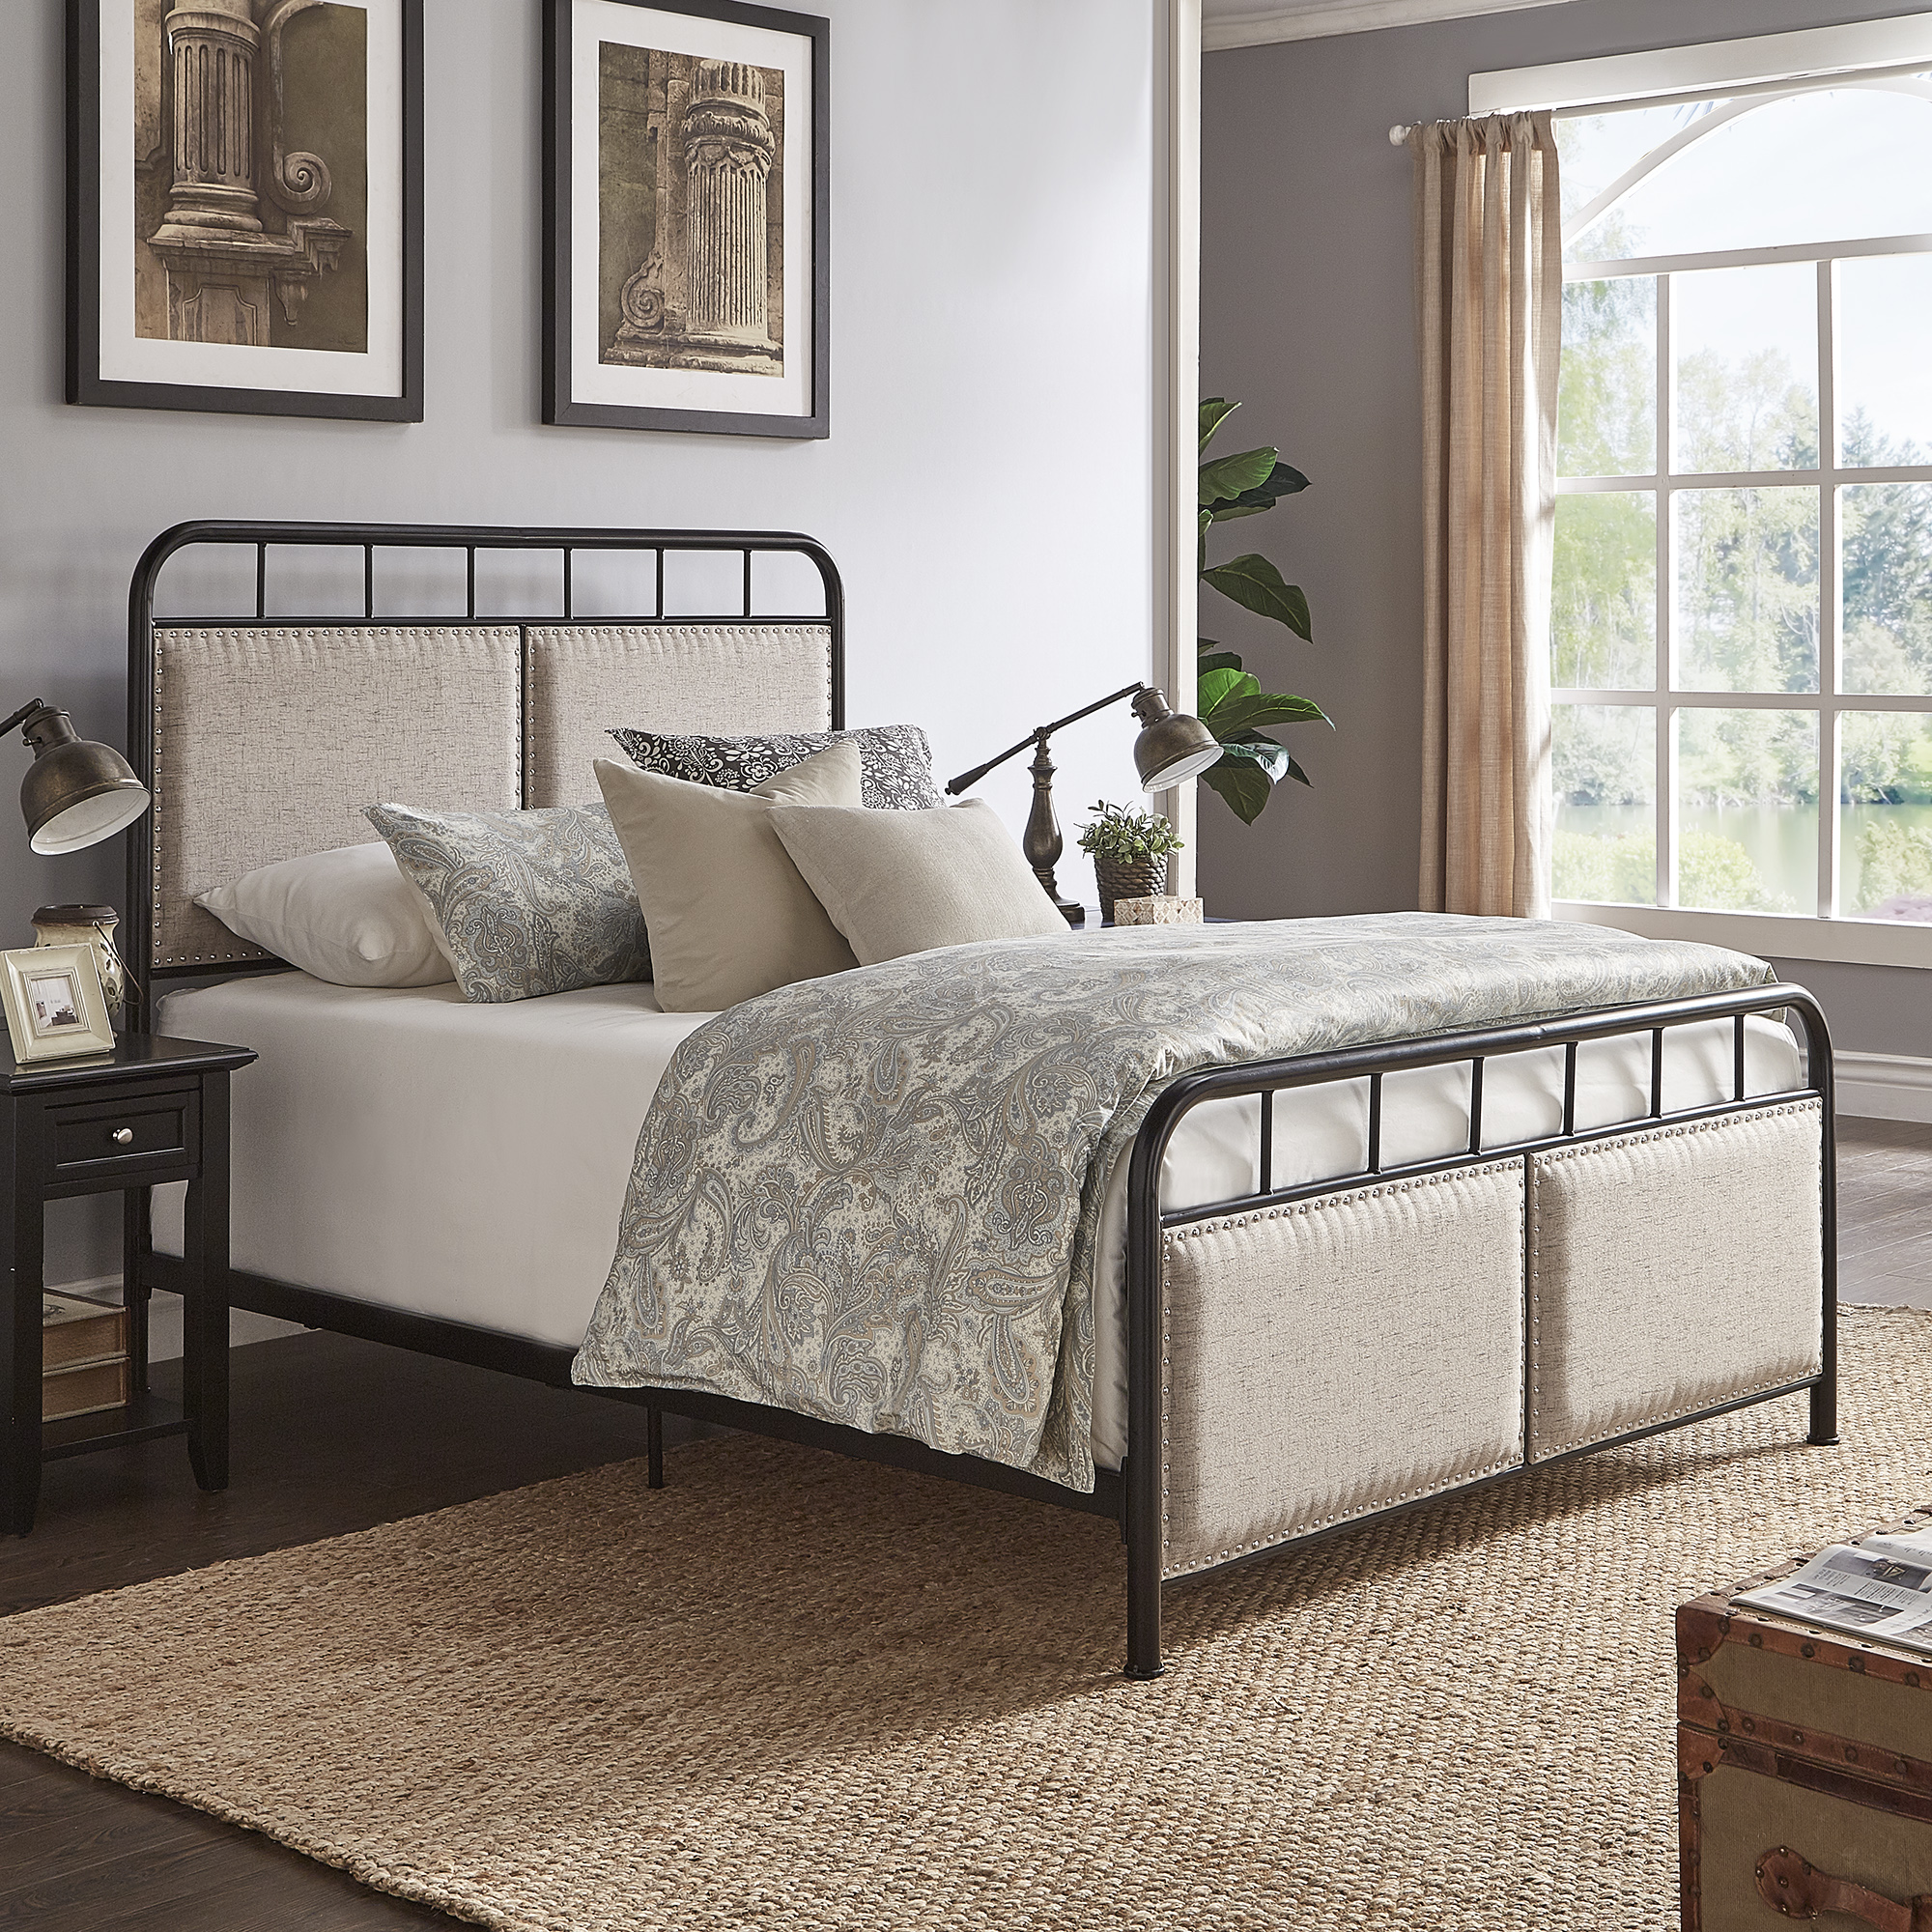 Weston Home Exton Black Metal Queen Bed With Beige Upholstered Headboard and Footboard